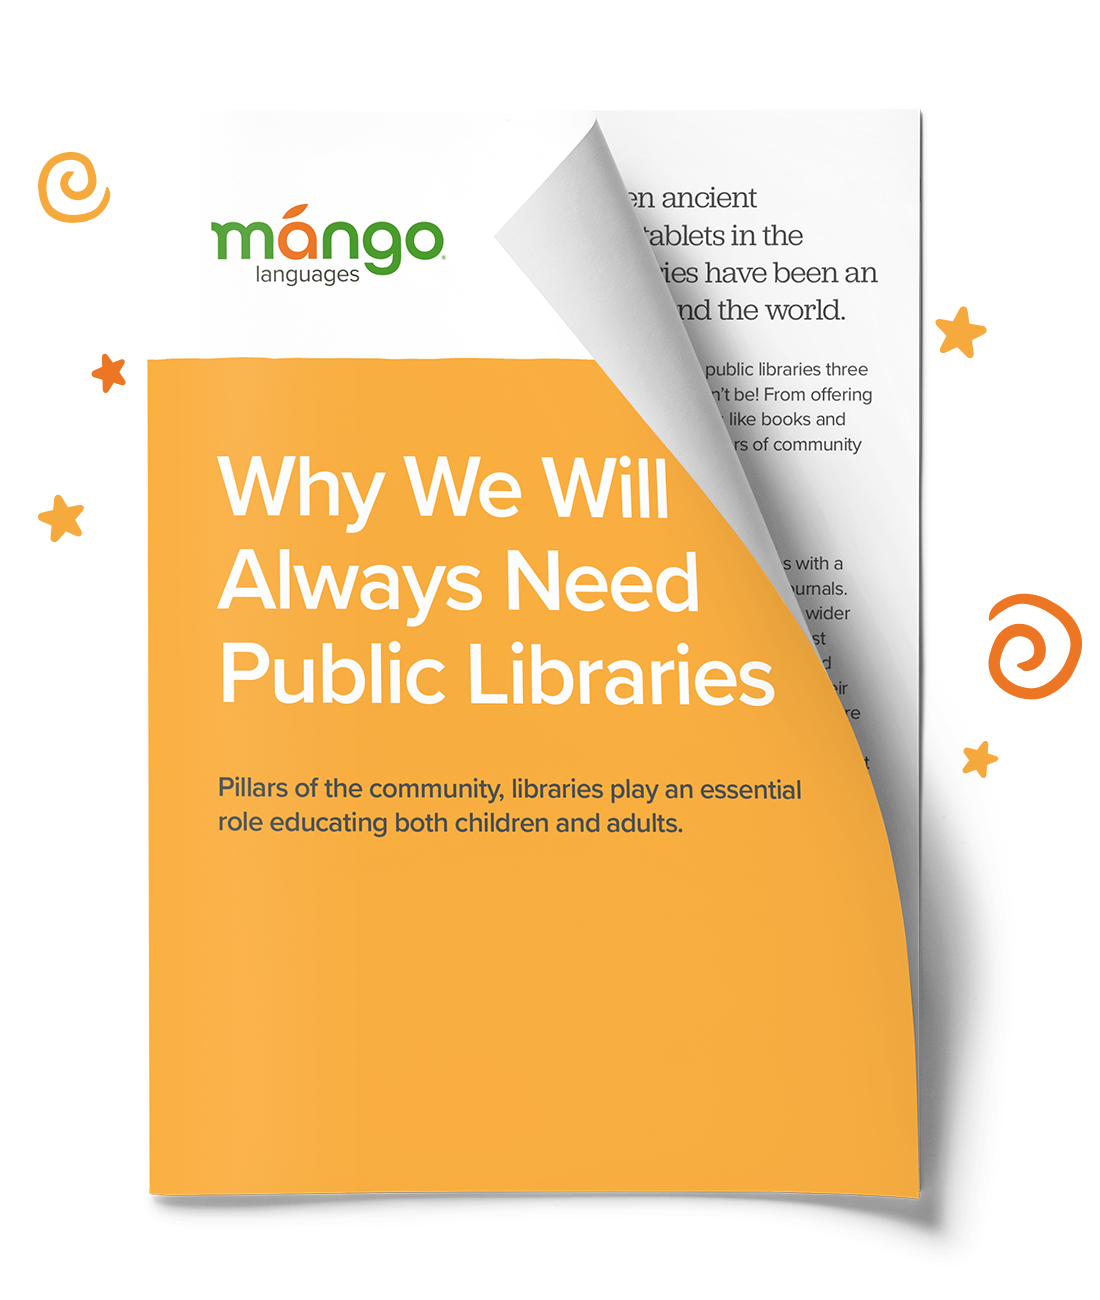 mango-inbound-why-we-need-public-libraries.png